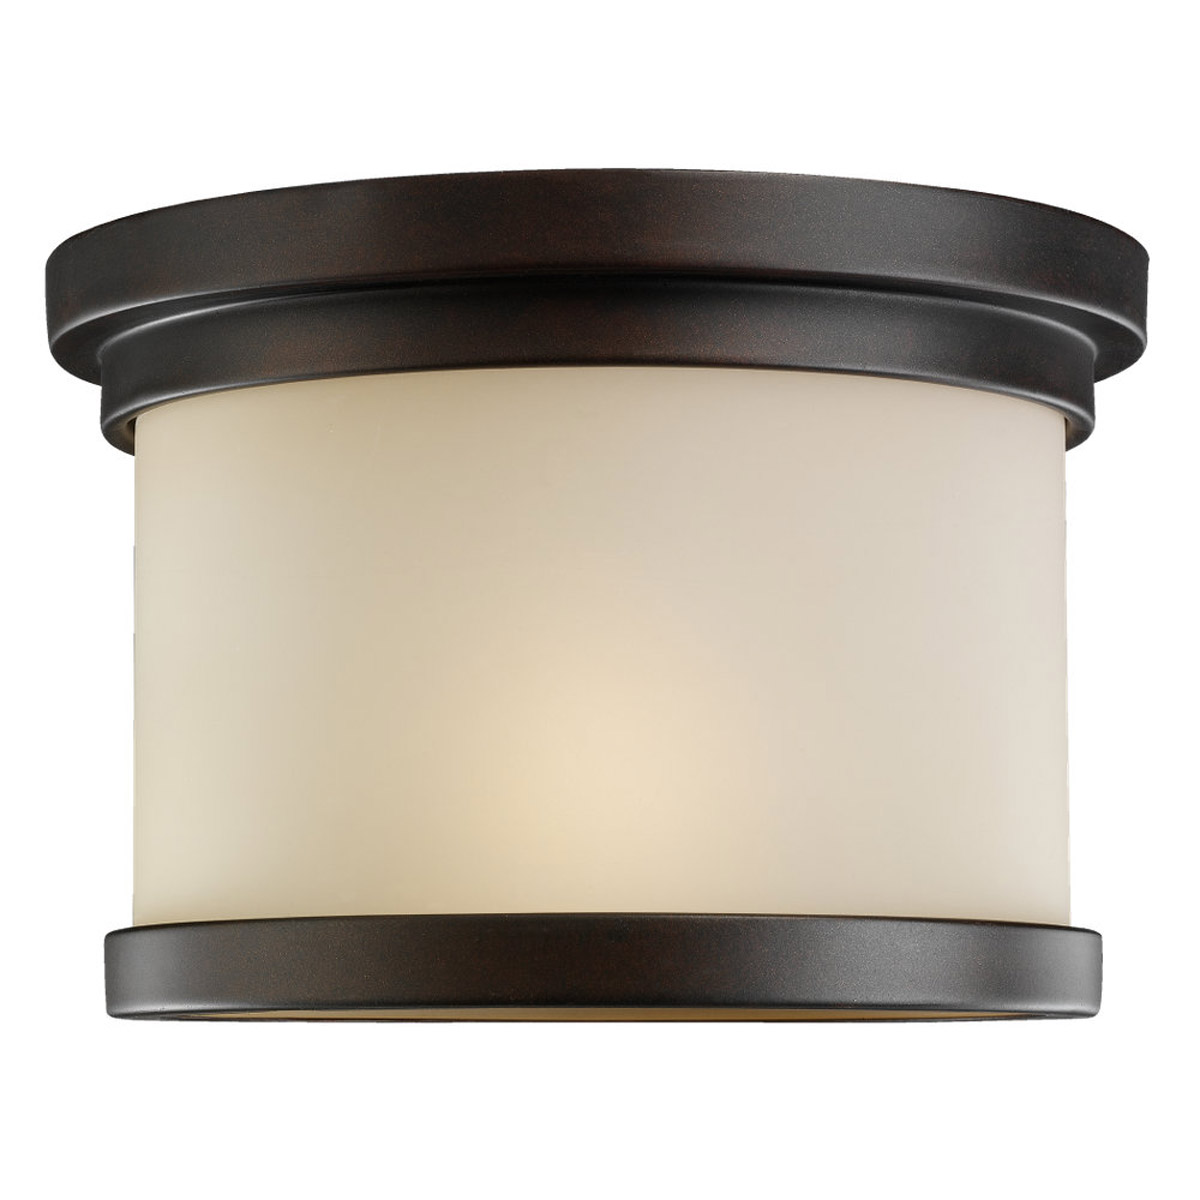 Sea Gull Lighting Winnetka 1 Light Outdoor Ceiling Fixture in Misted Bronze 78660-814